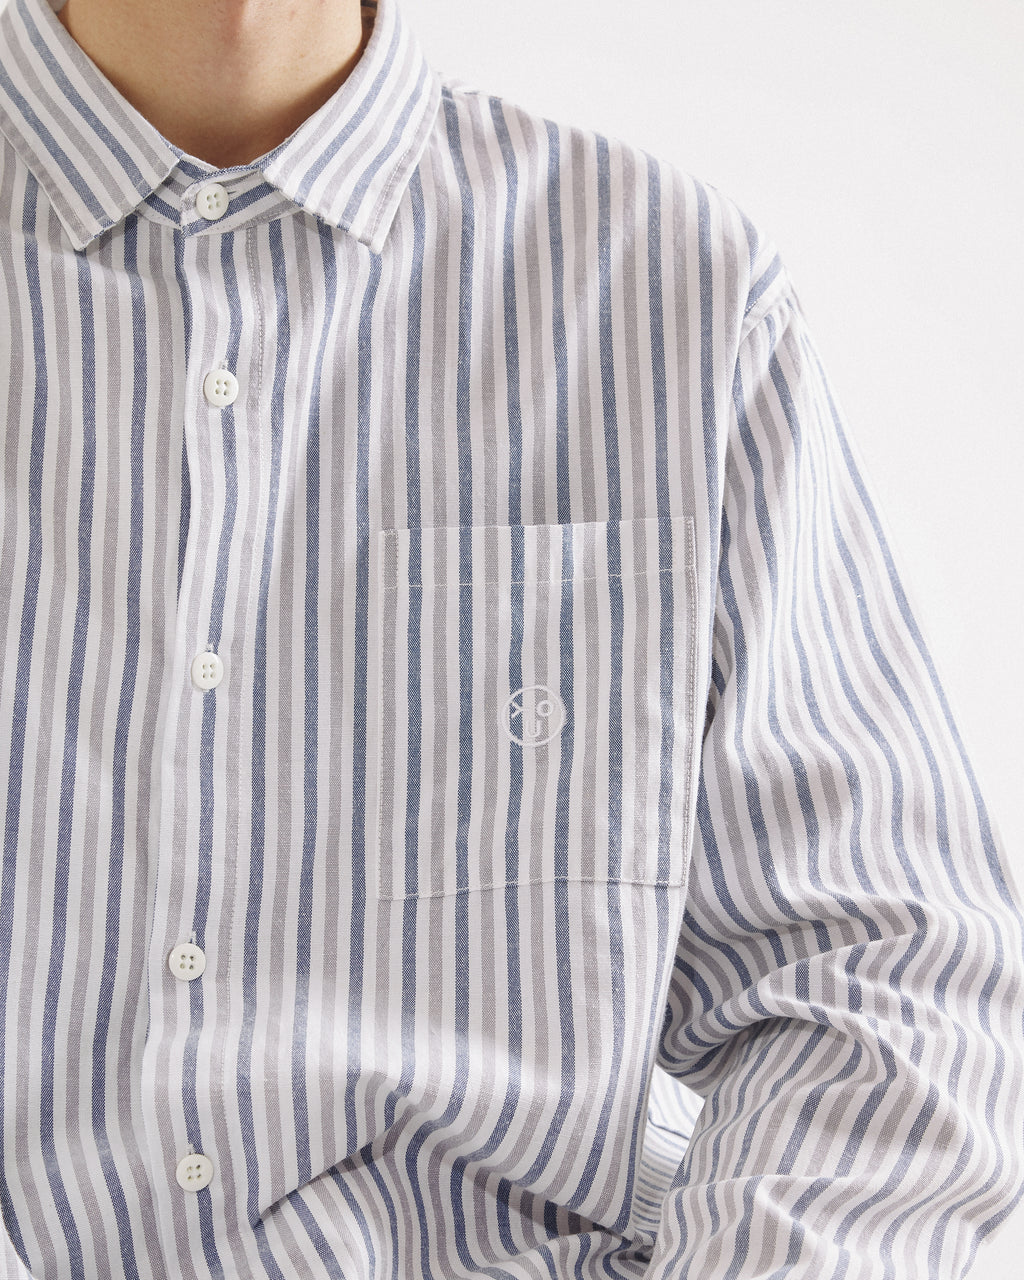 Overall Union - Box Button Down Shirt - Grey